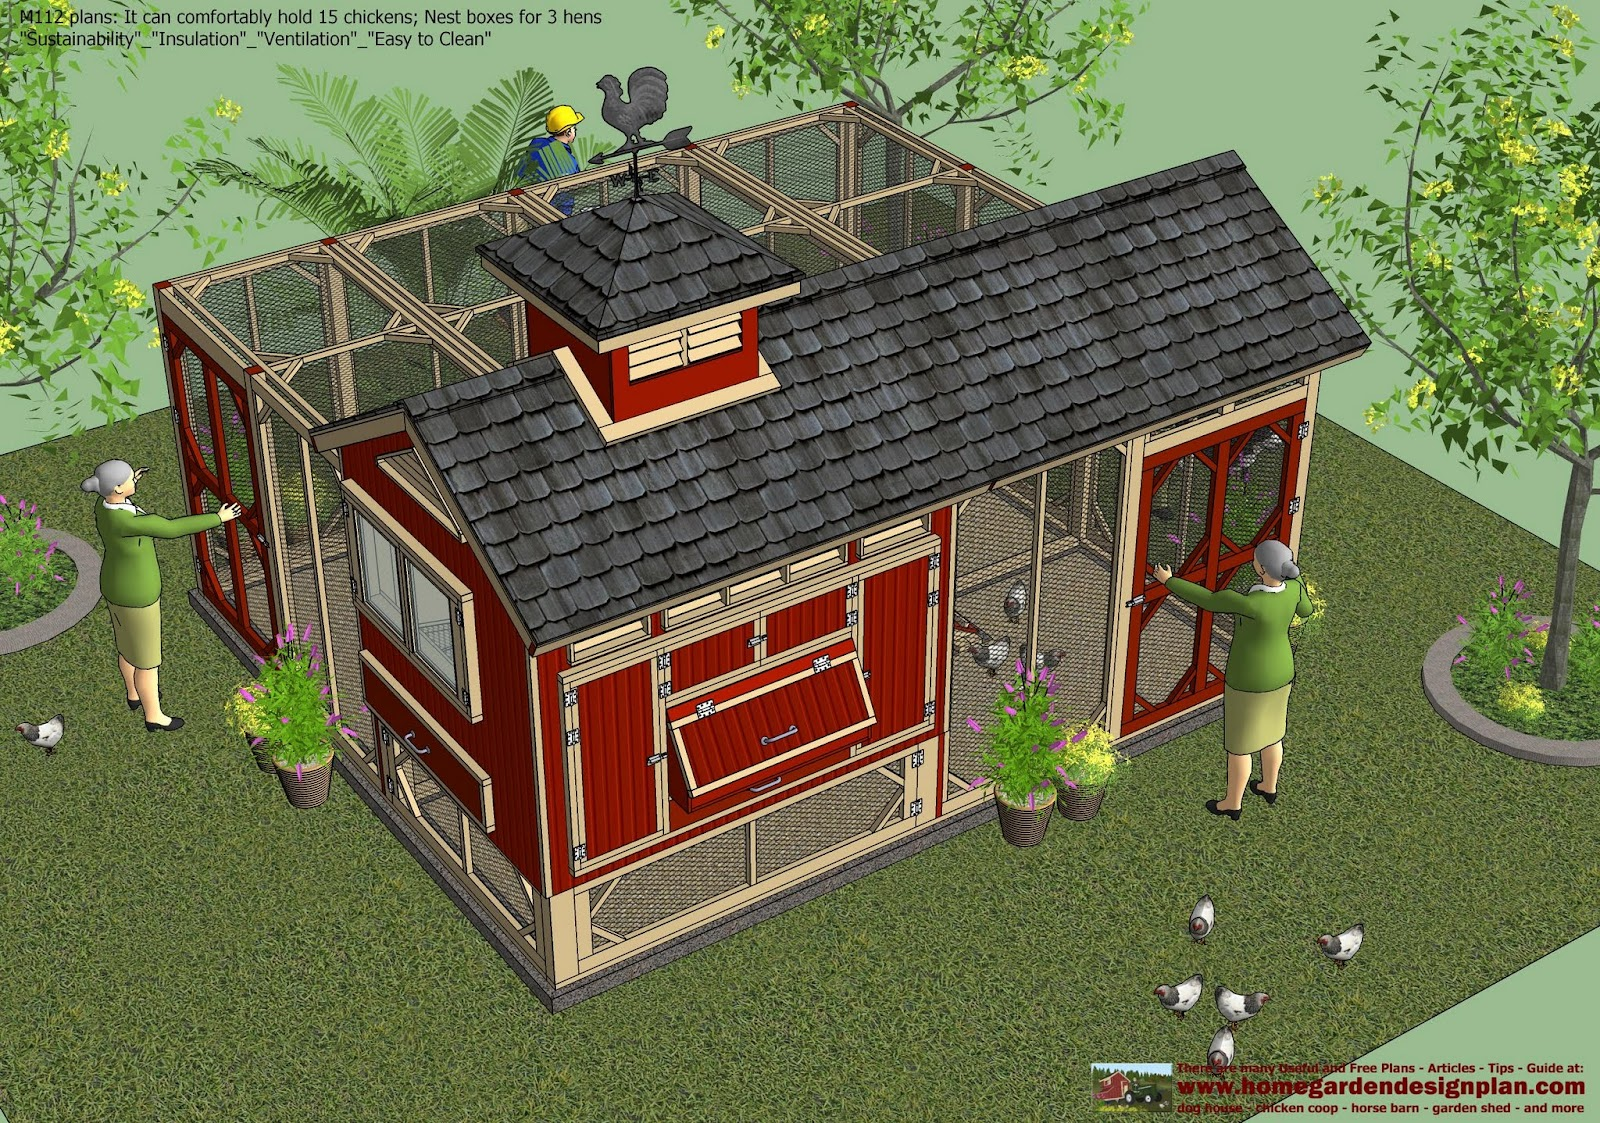 Home garden plans m112 chicken coop plans construction for Free coop plans